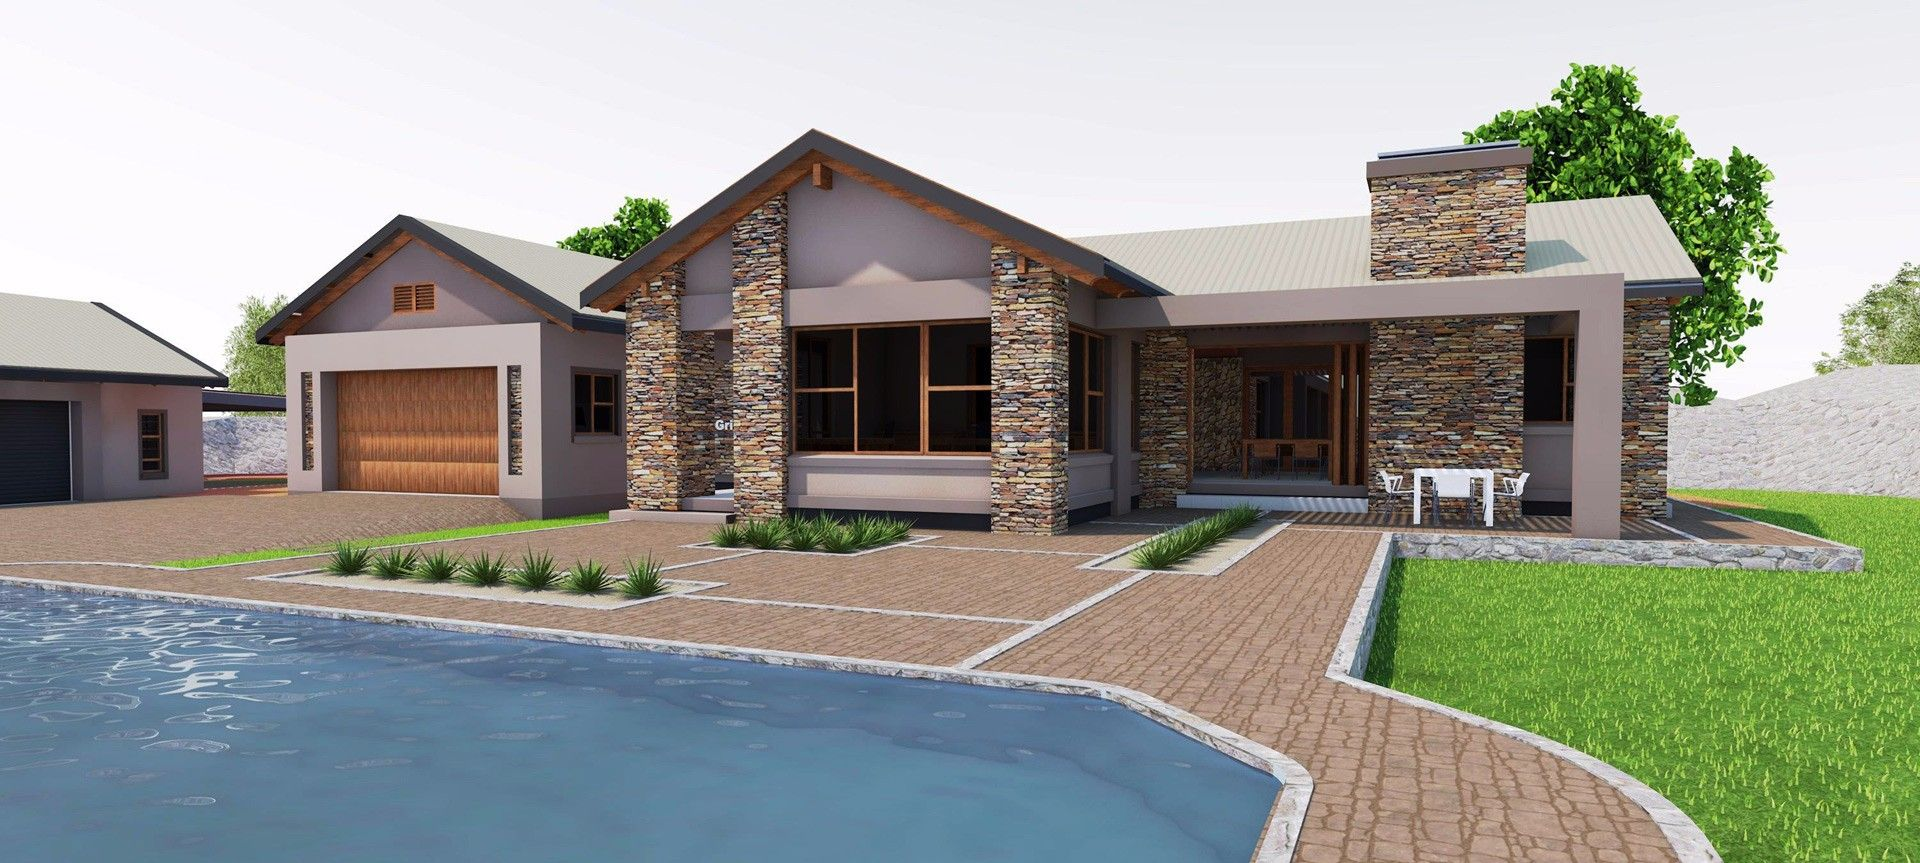 Icymi House Plans In South Africa Free Download Home Design In